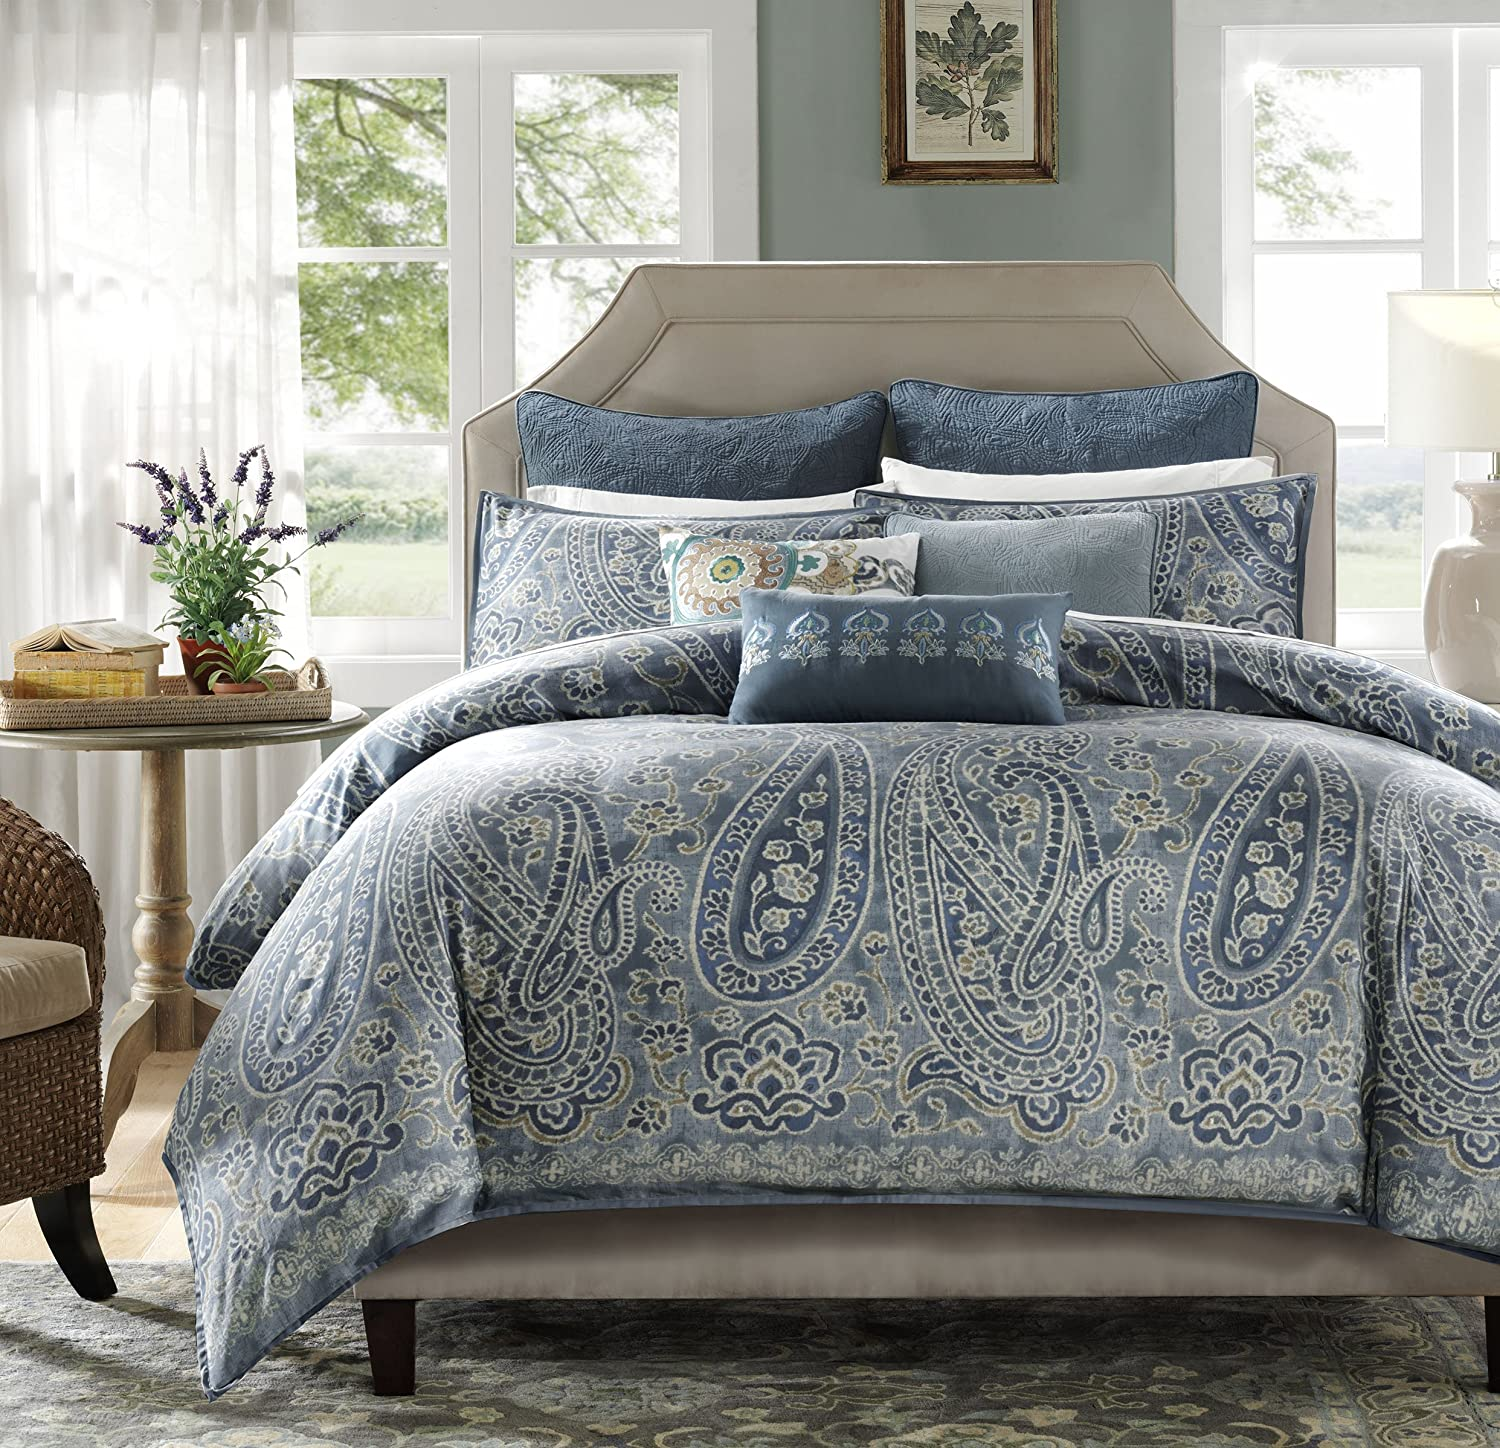 amazon cottage stone home com duvet kitchen king sateen set nnb covers cotton lancaster dp paisley jcl comforter